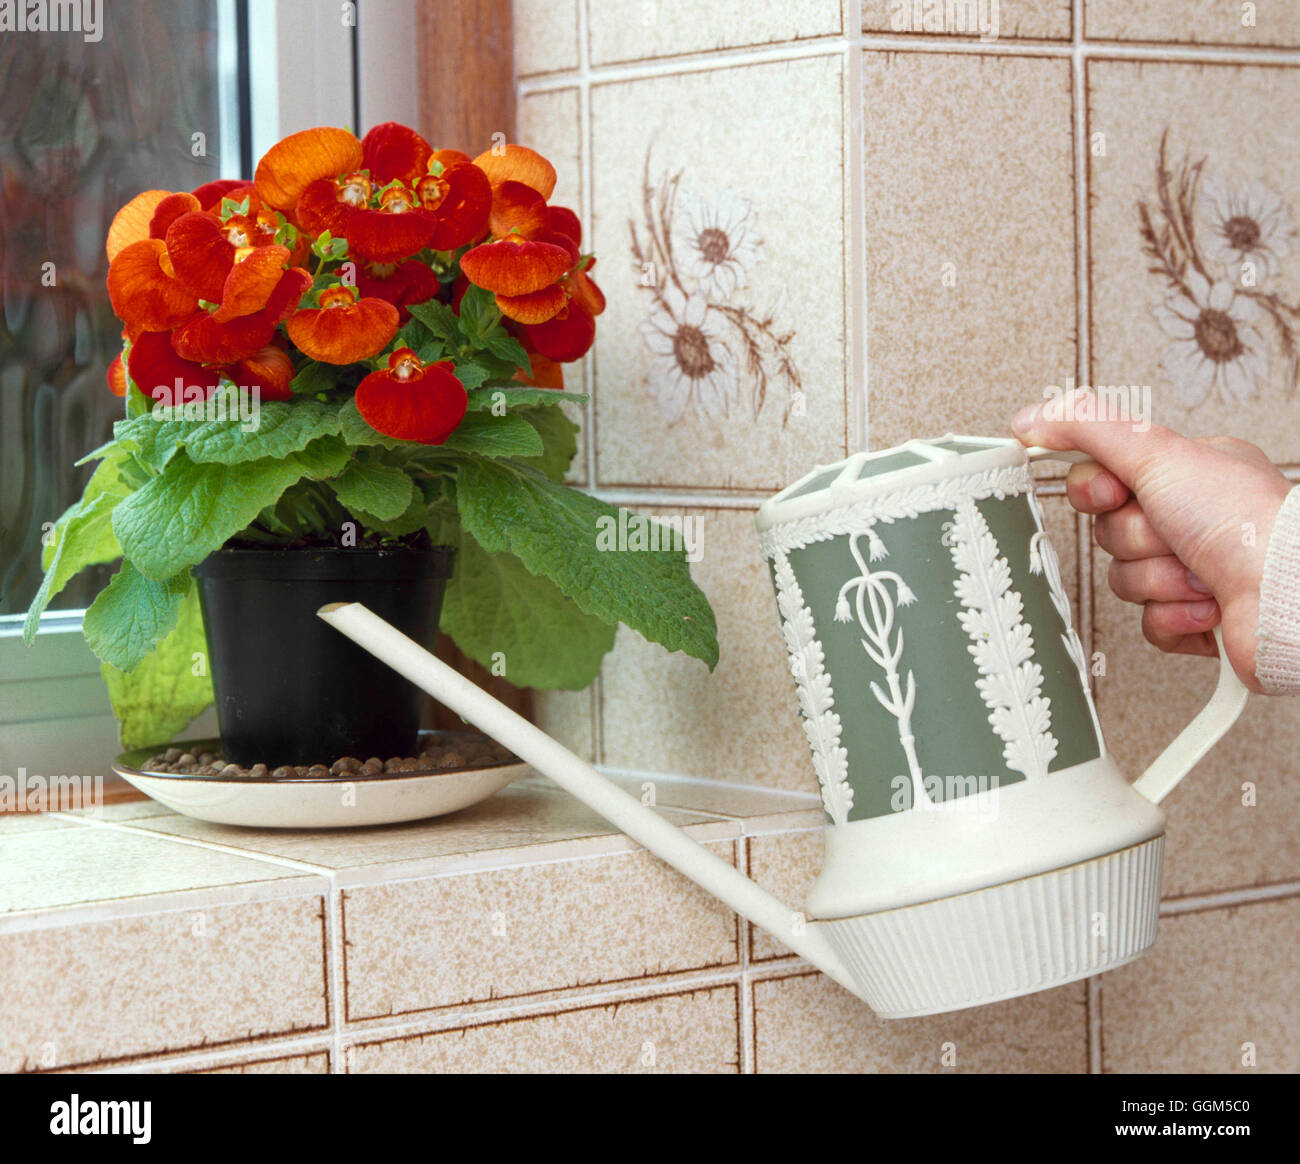 Houseplant Care: - Watering pebbles to maintain humidity / microclimate  for Calceolaria   TAS031277  Compulsory - Stock Image